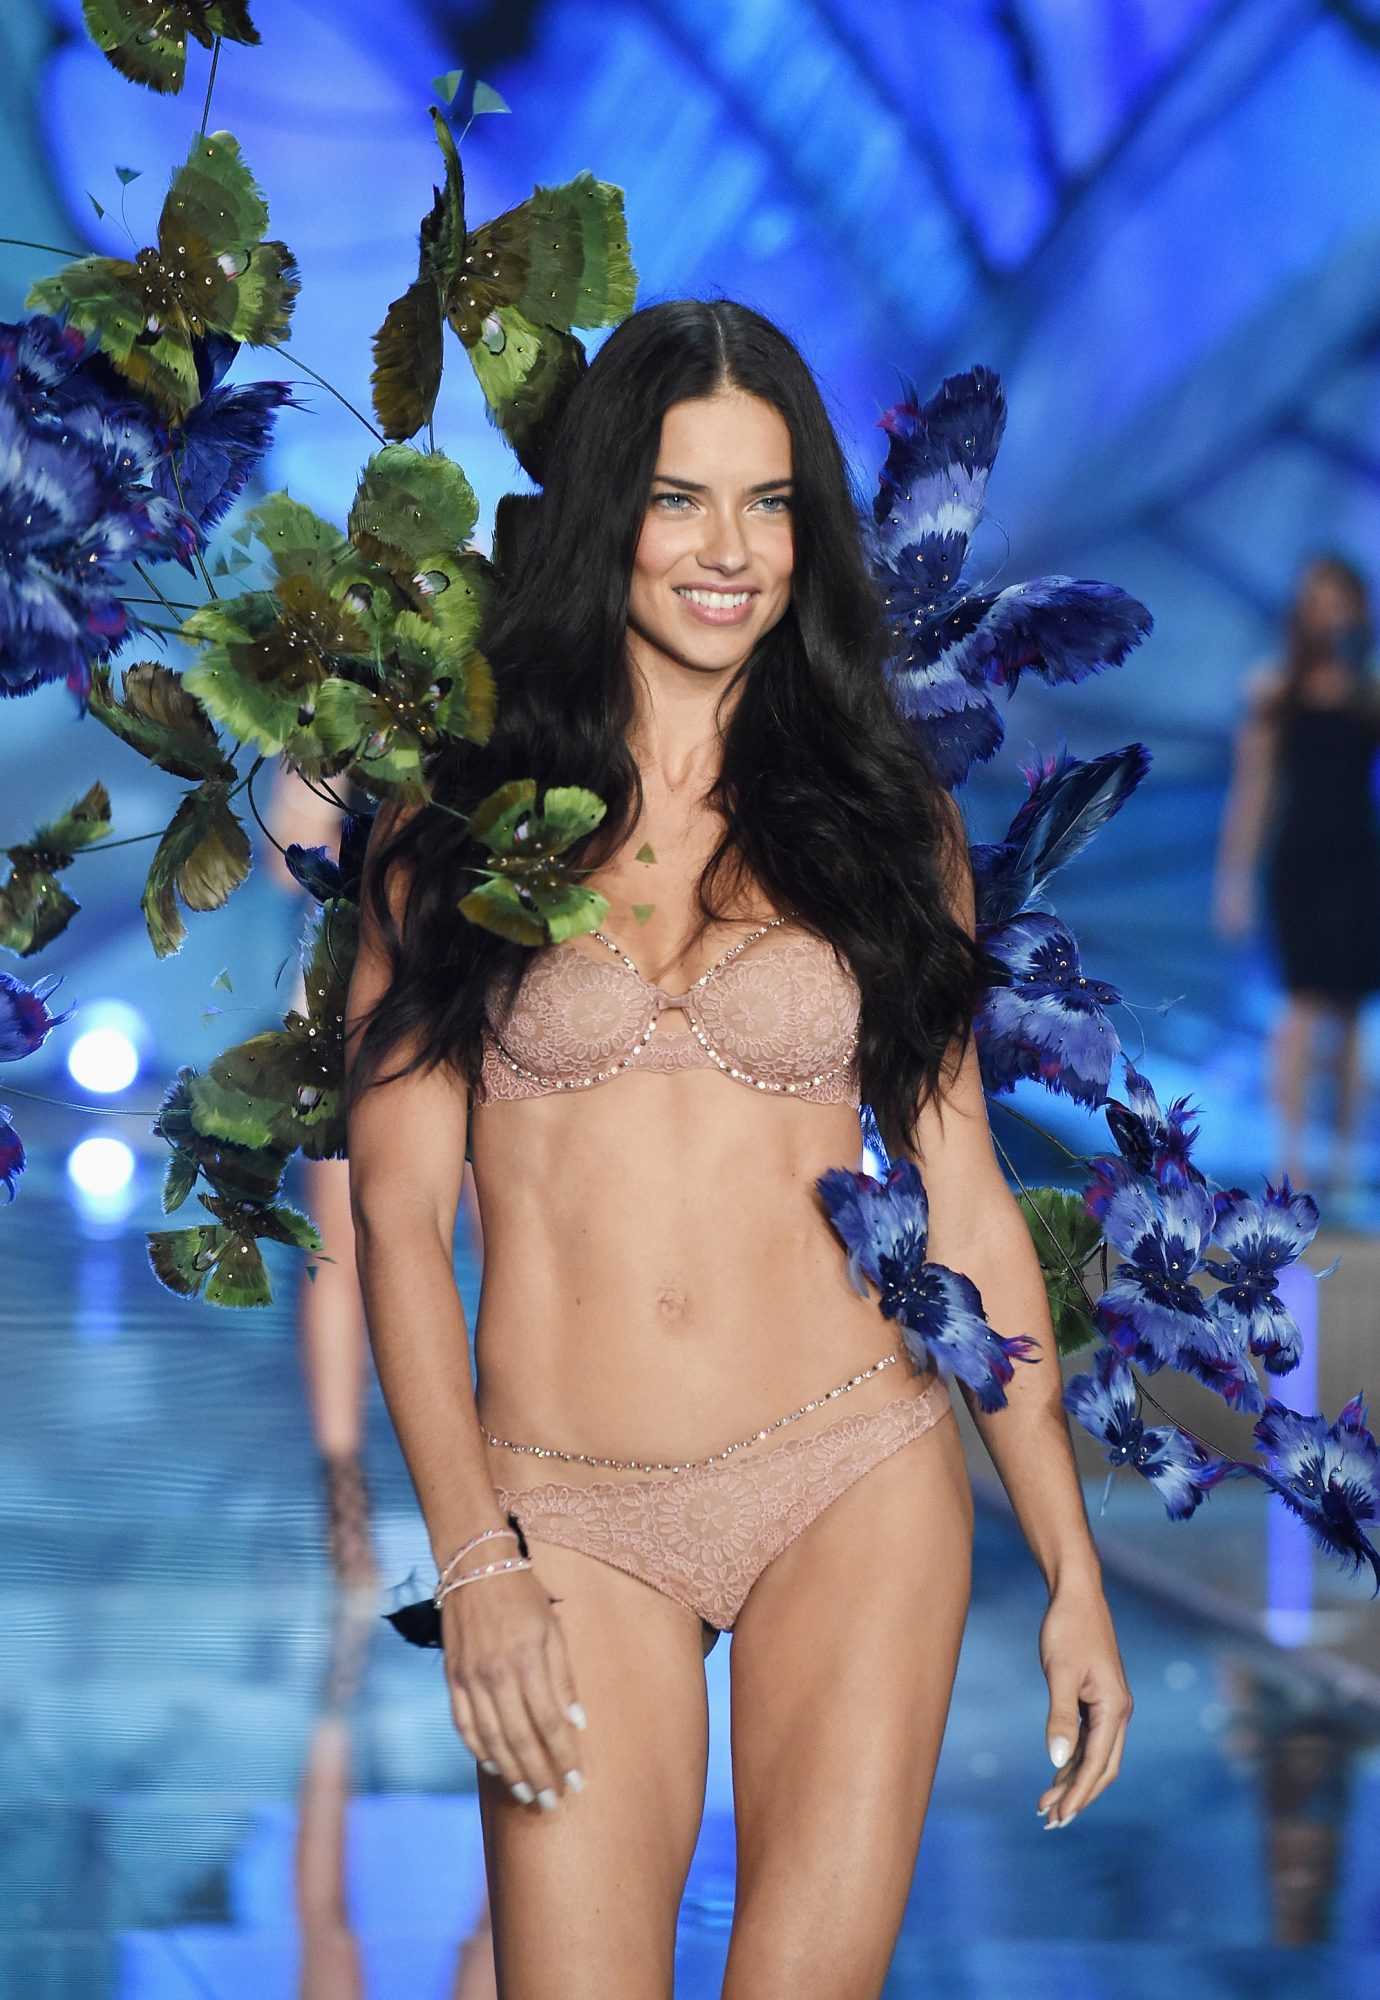 So This Is How Adriana Lima Stays in Such Killer Shape